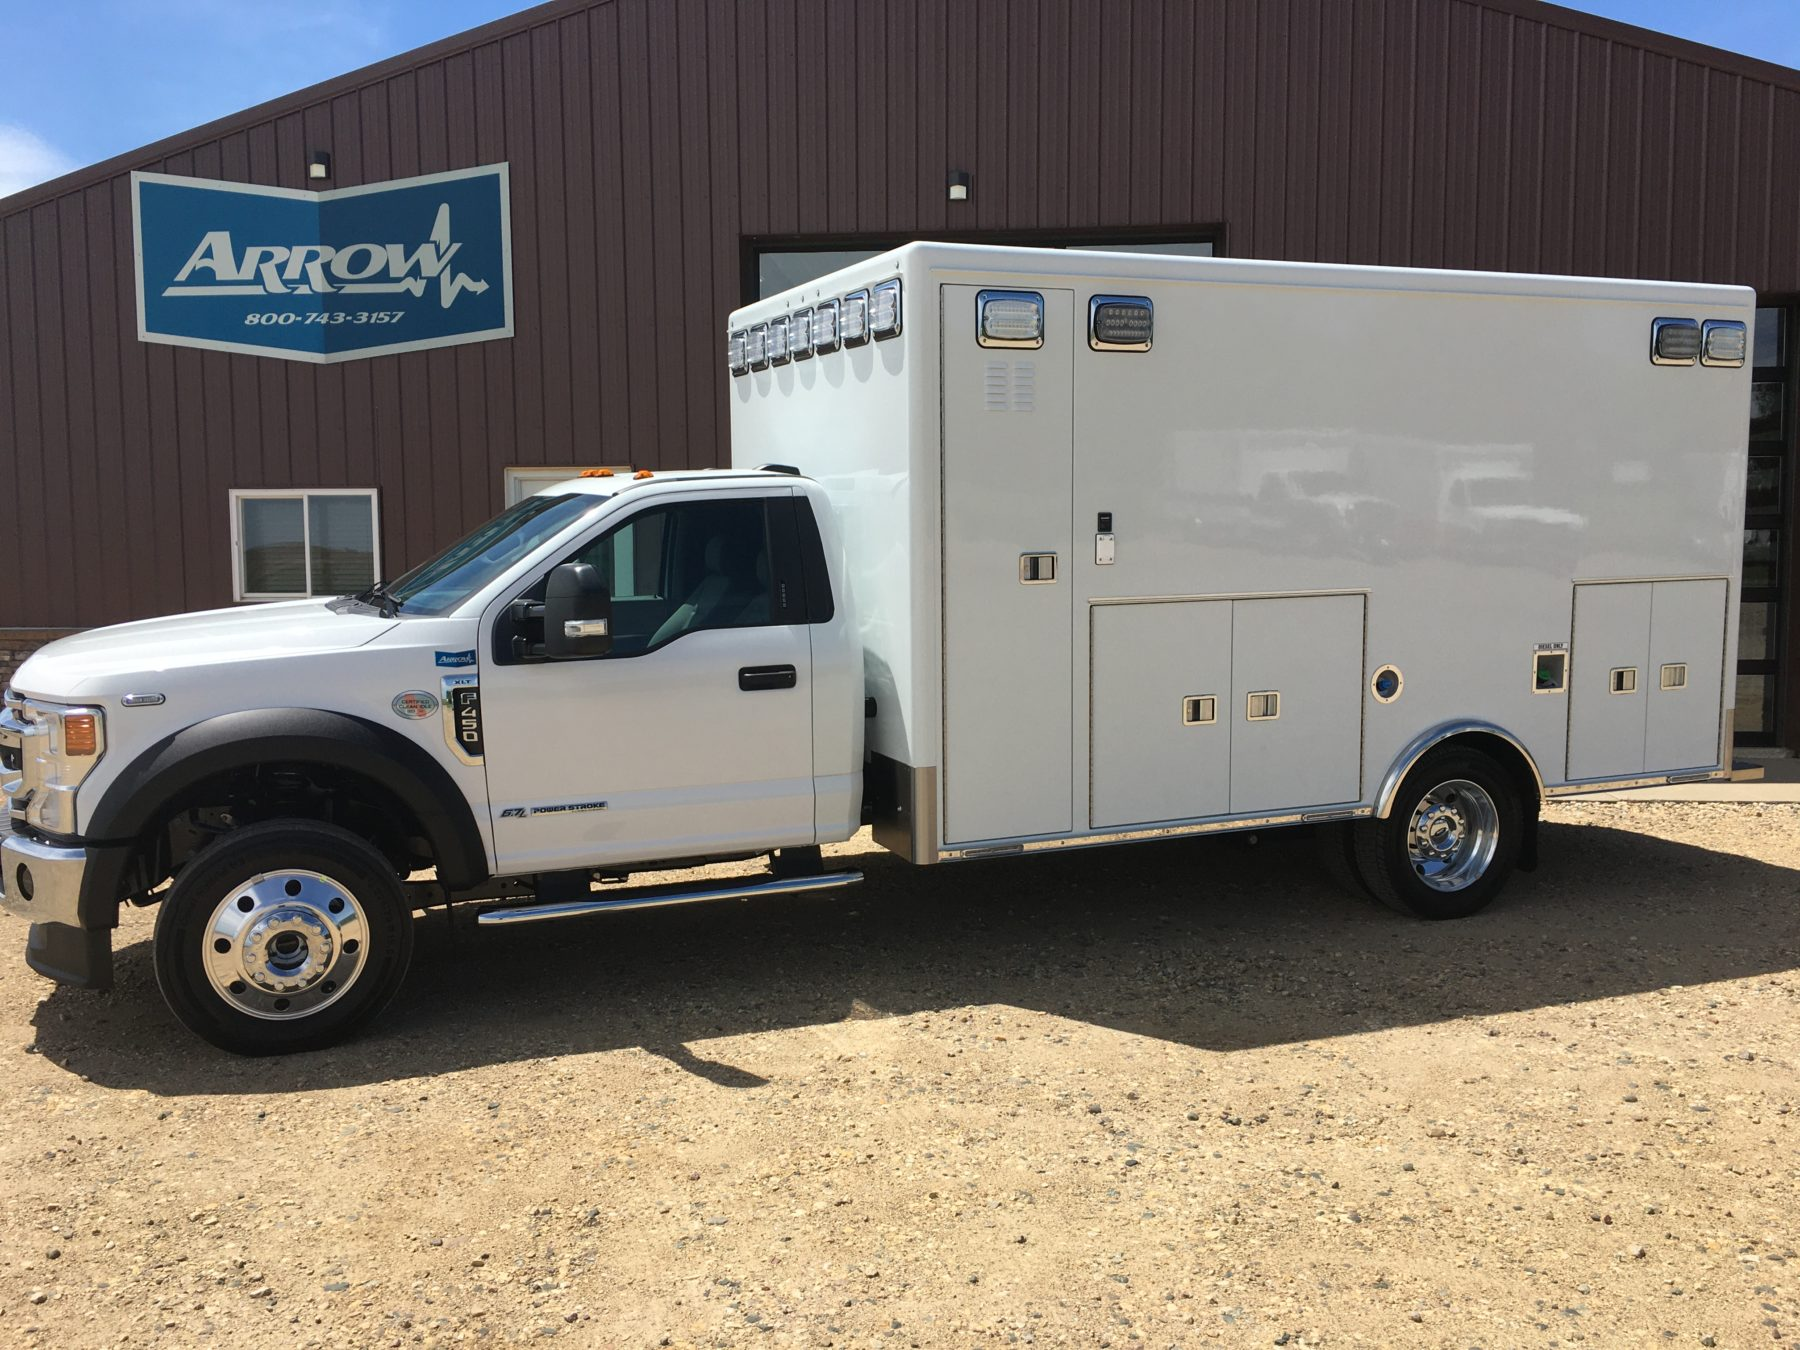 2021 Ford F450 4x4 Heavy Duty Ambulance For Sale – Picture 3